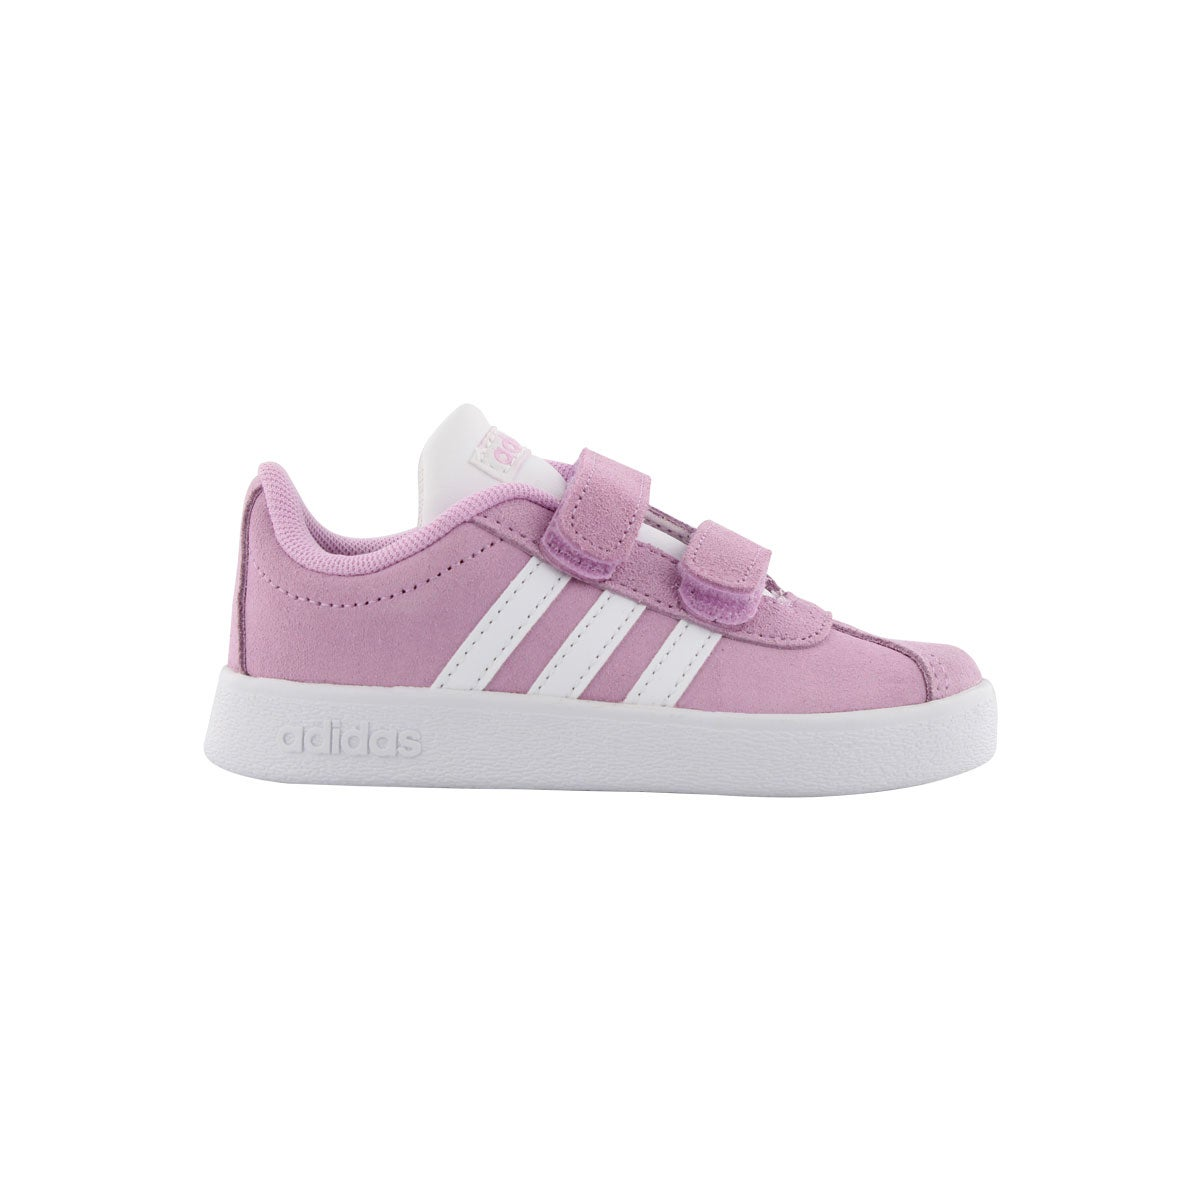 Inf VL Court 2.0 CMF I lilac/wht sneaker